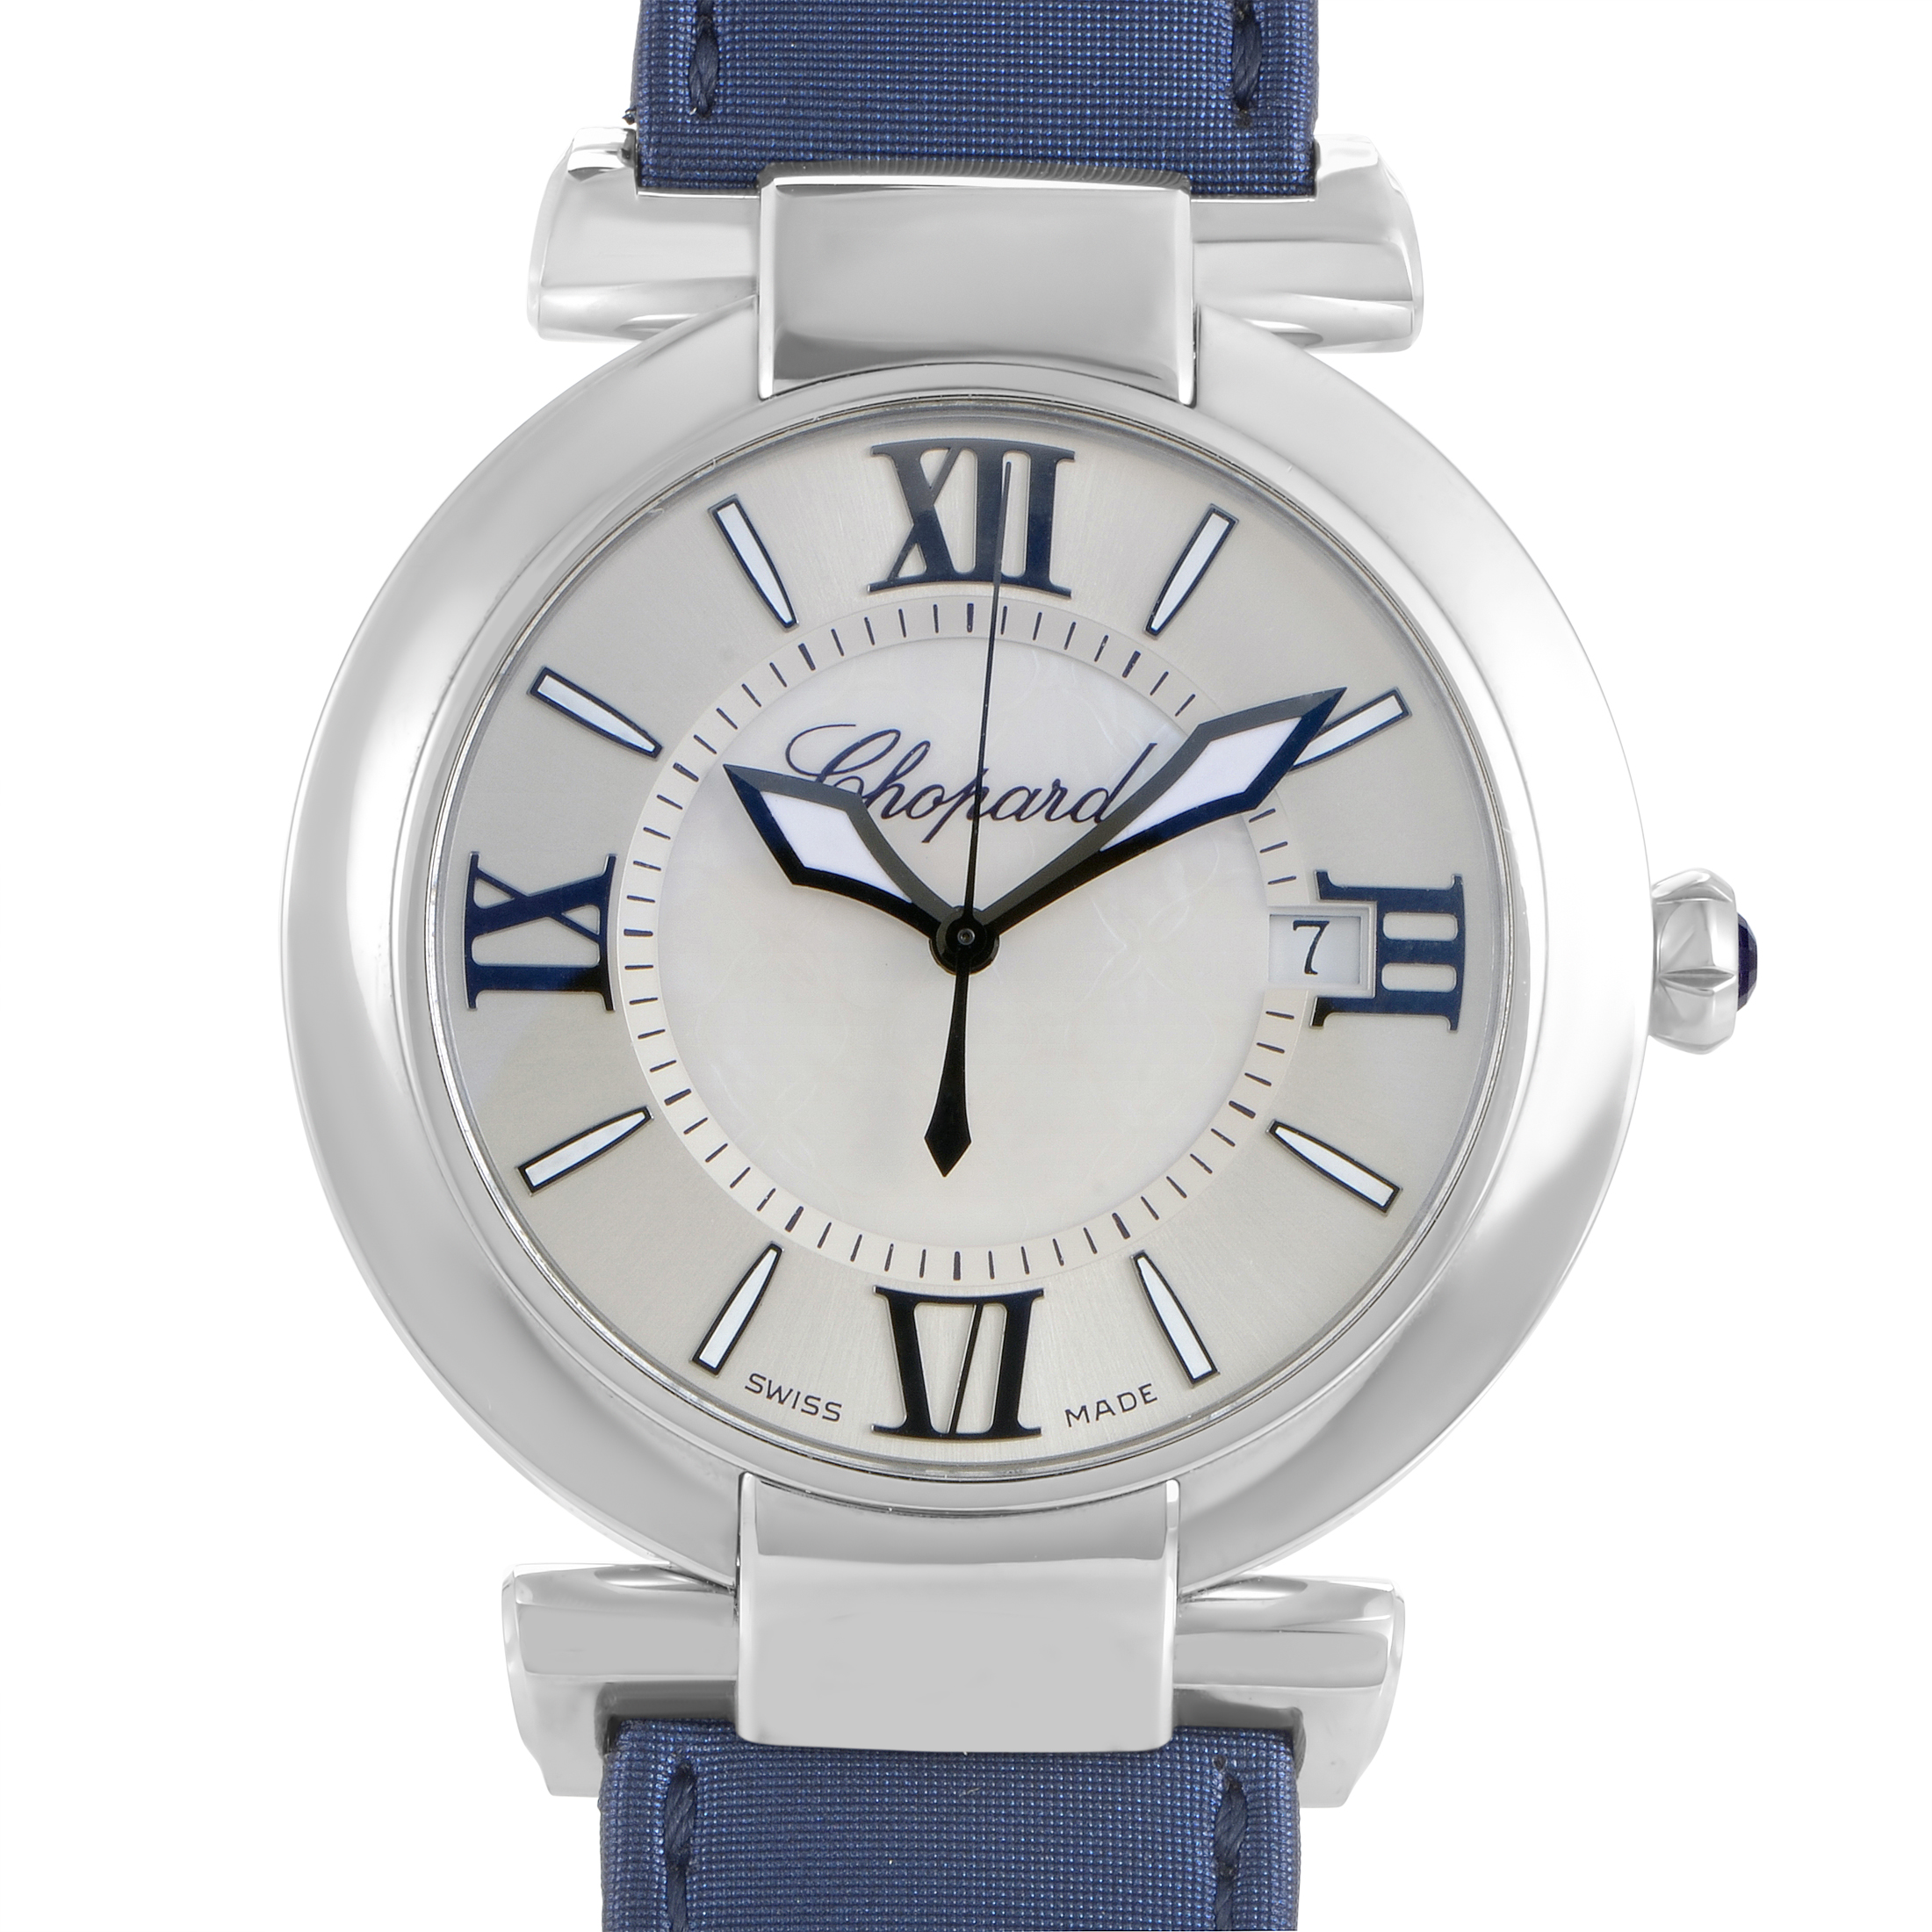 Imperiale Women's Automatic Watch 388531-3001